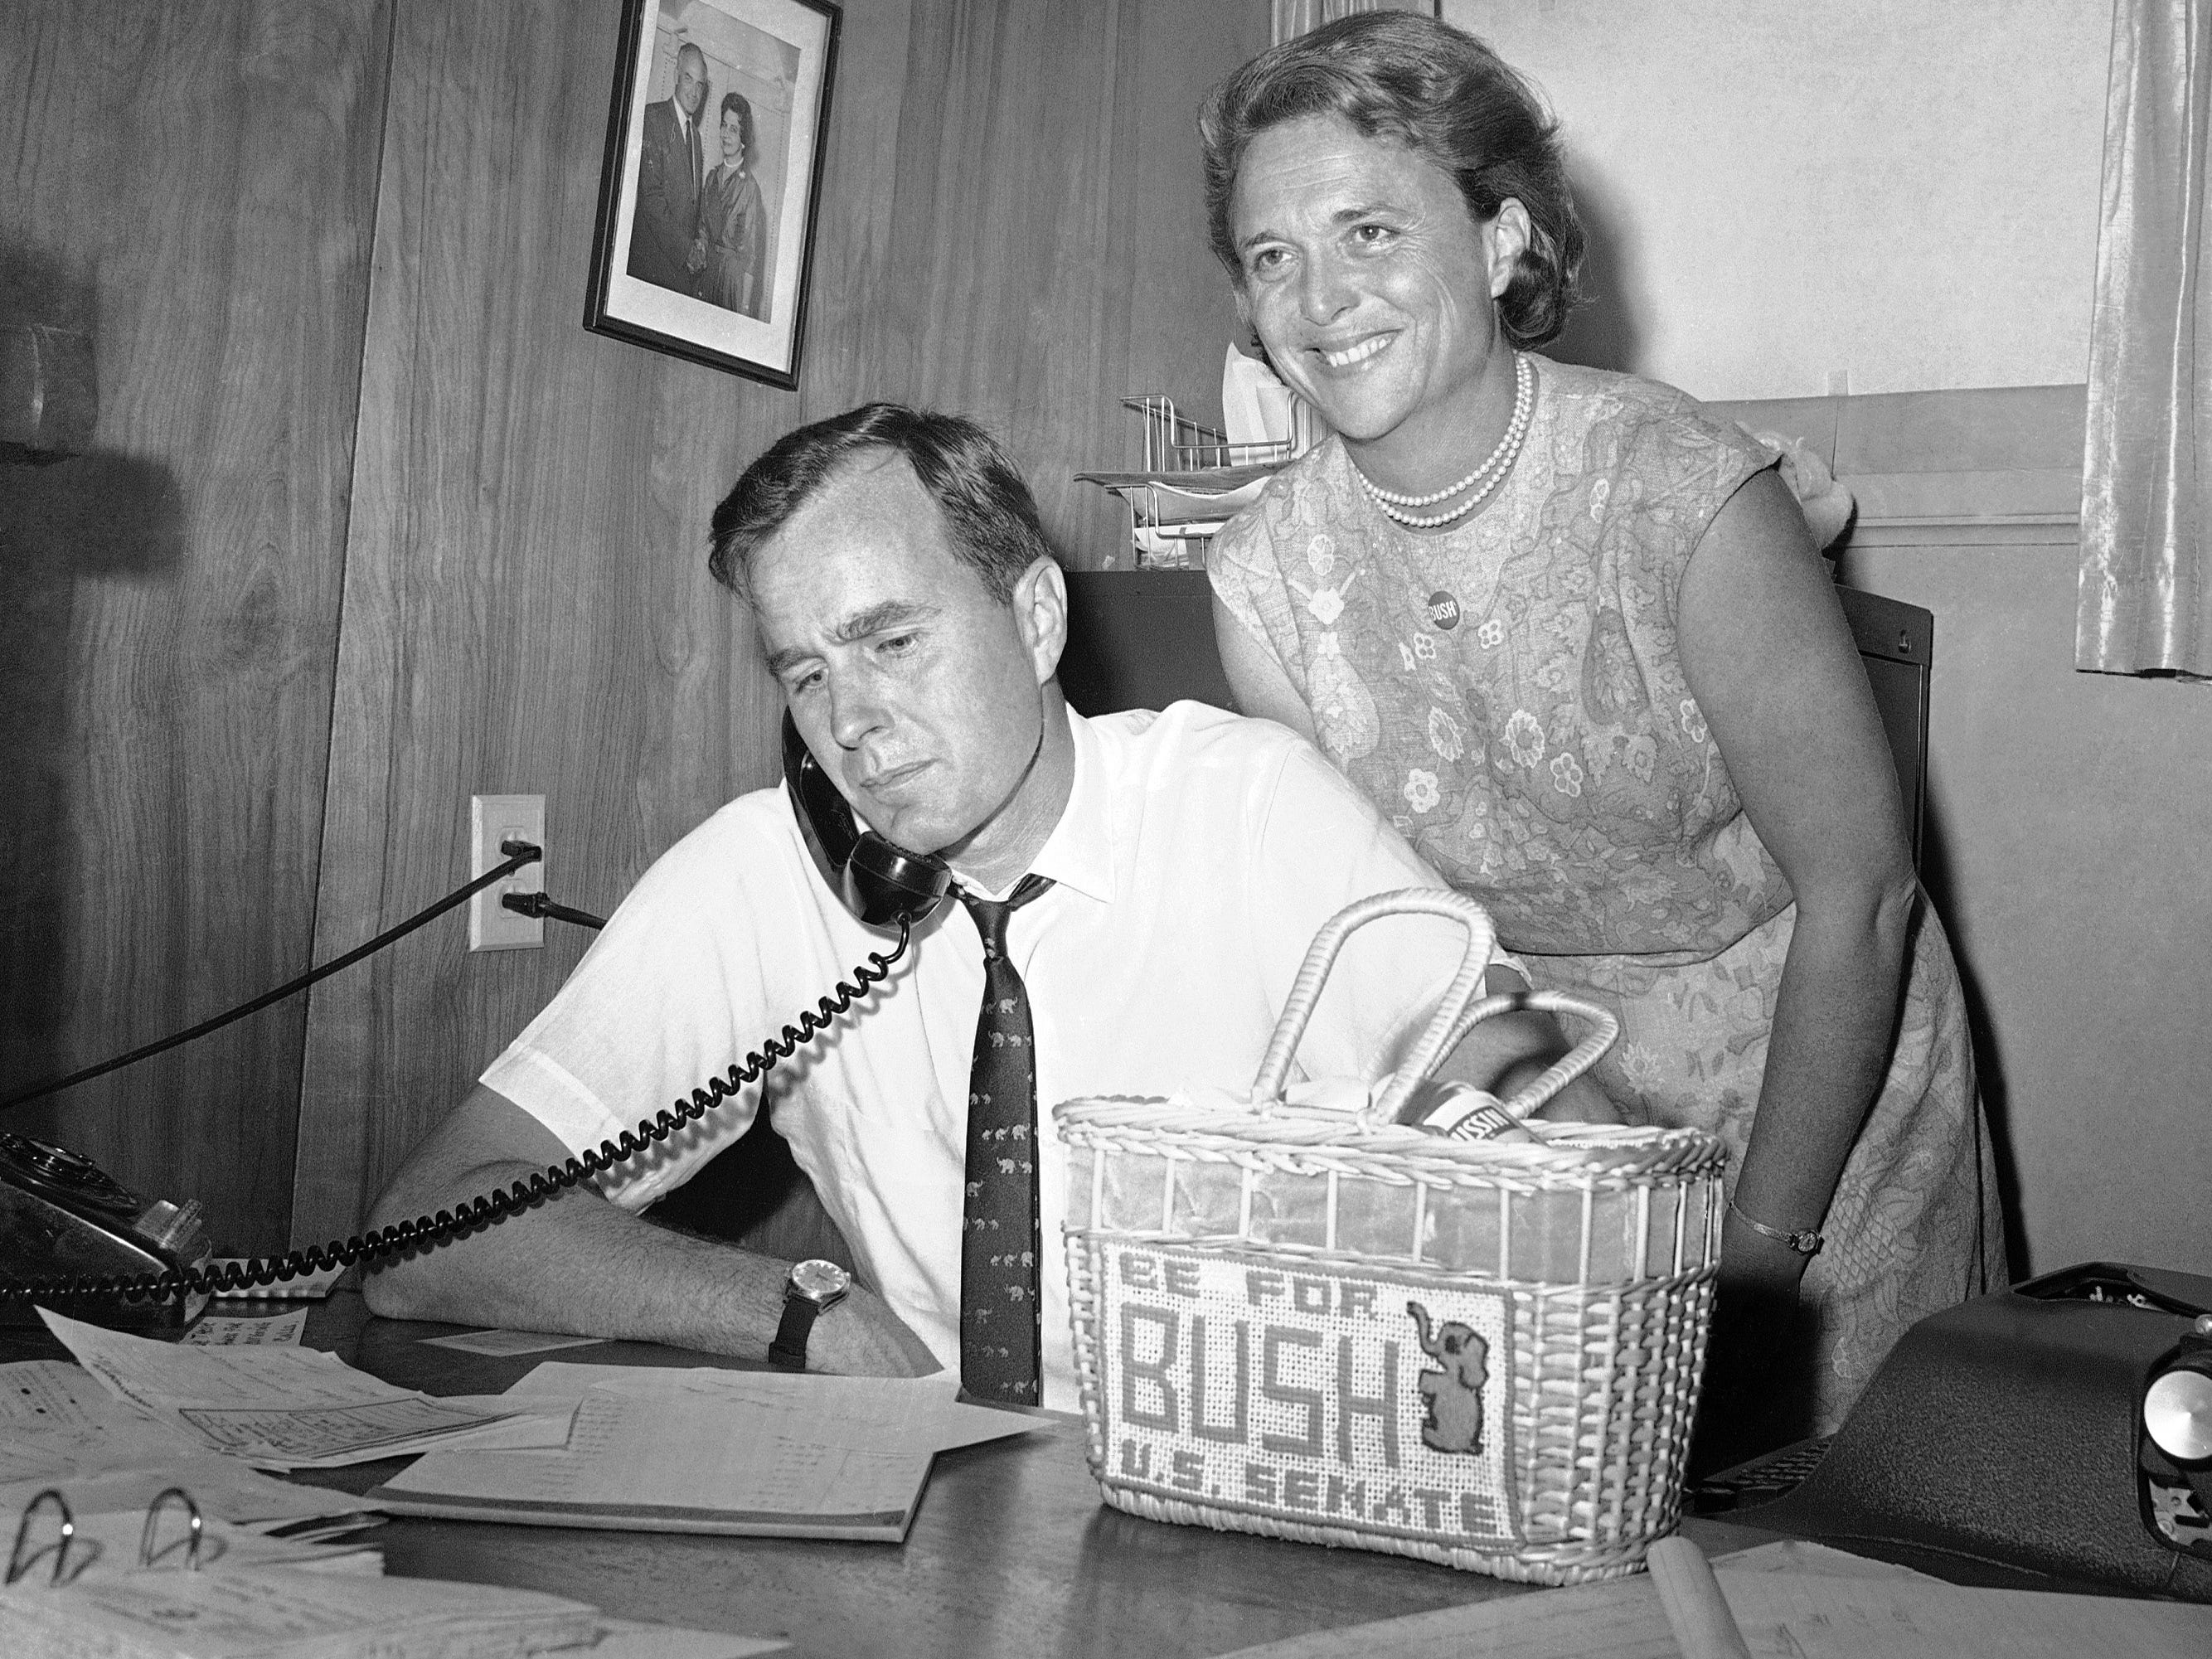 In this June 6, 1964 photo, George H.W. Bush, candidate for the Republican nomination for the U.S. Senate, gets ballot returns by phone at his headquarters in Houston, as his wife Barbara, smiles at the news.